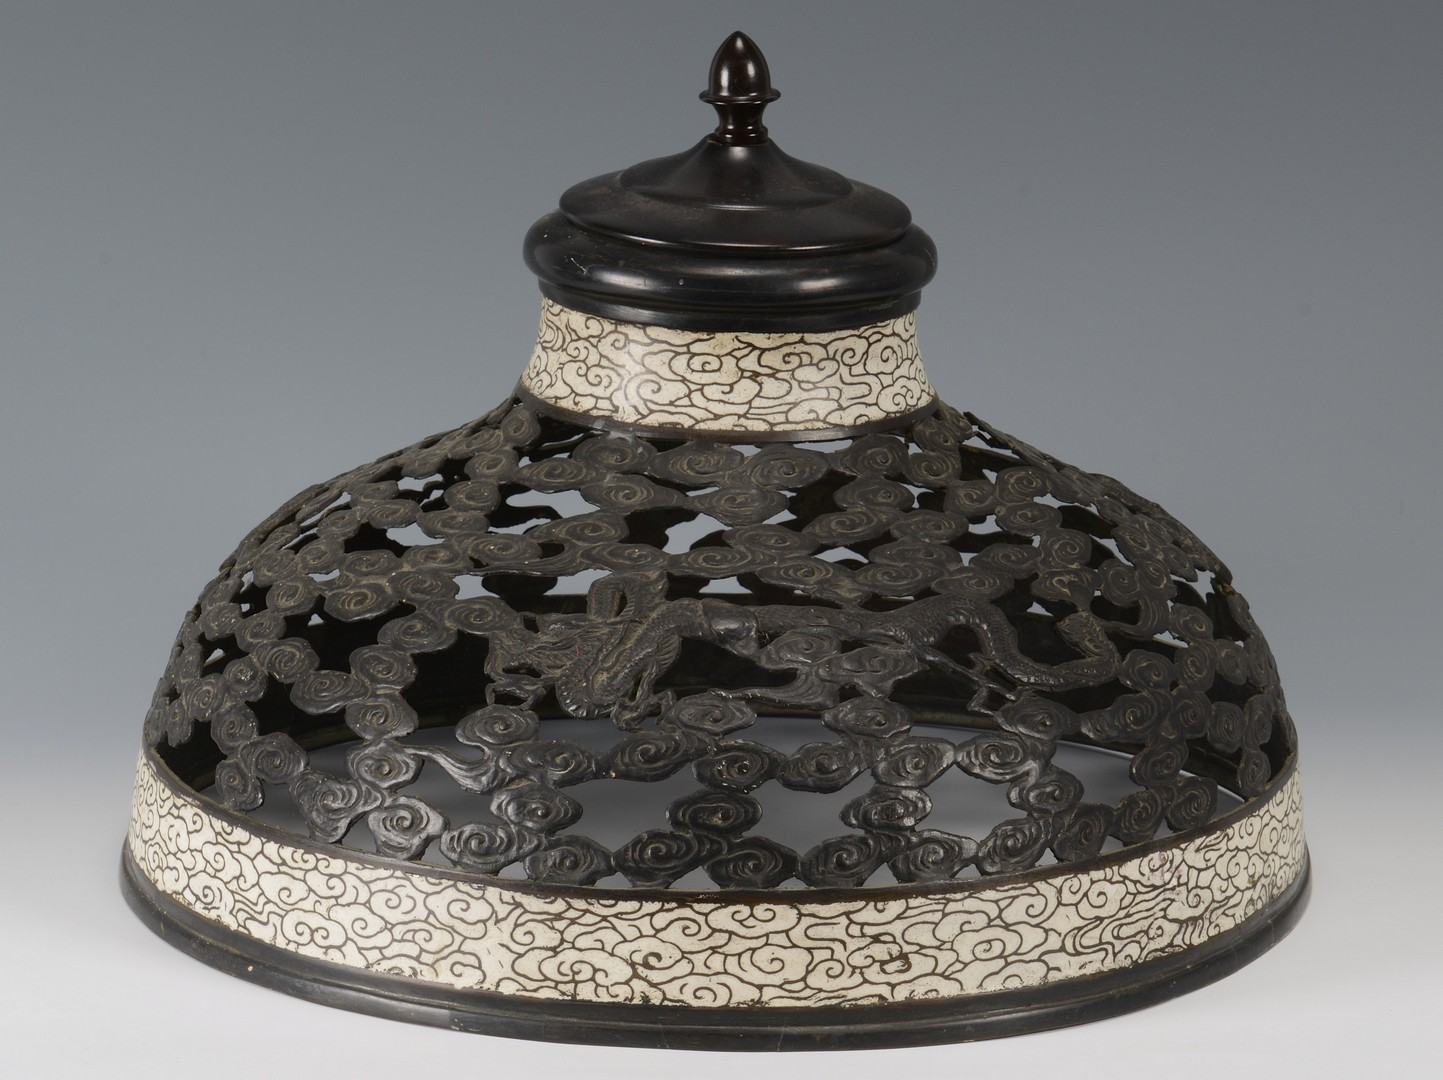 Lot 3594157: Japanese Cloisonne & Bronze Lamp